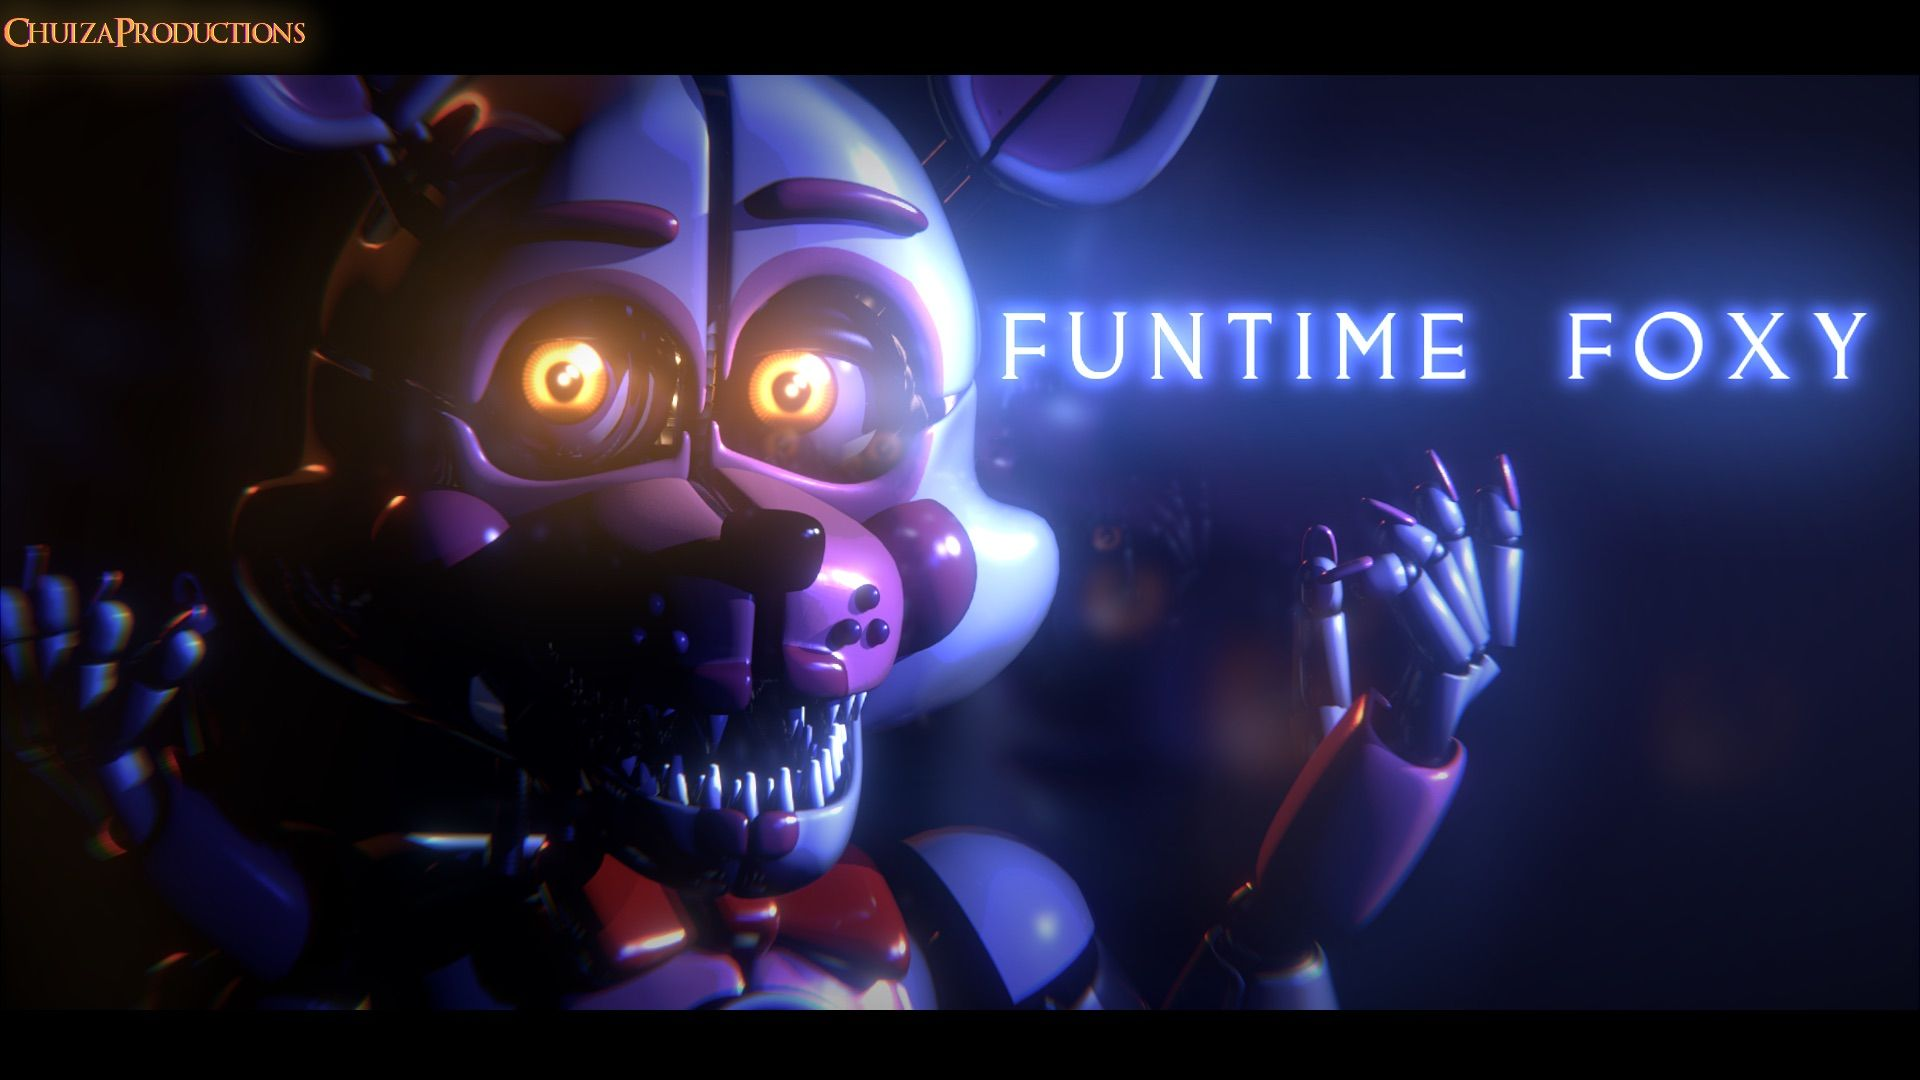 Pin by Kbrown on Five Nights at Freddy's Fnaf, Funtime